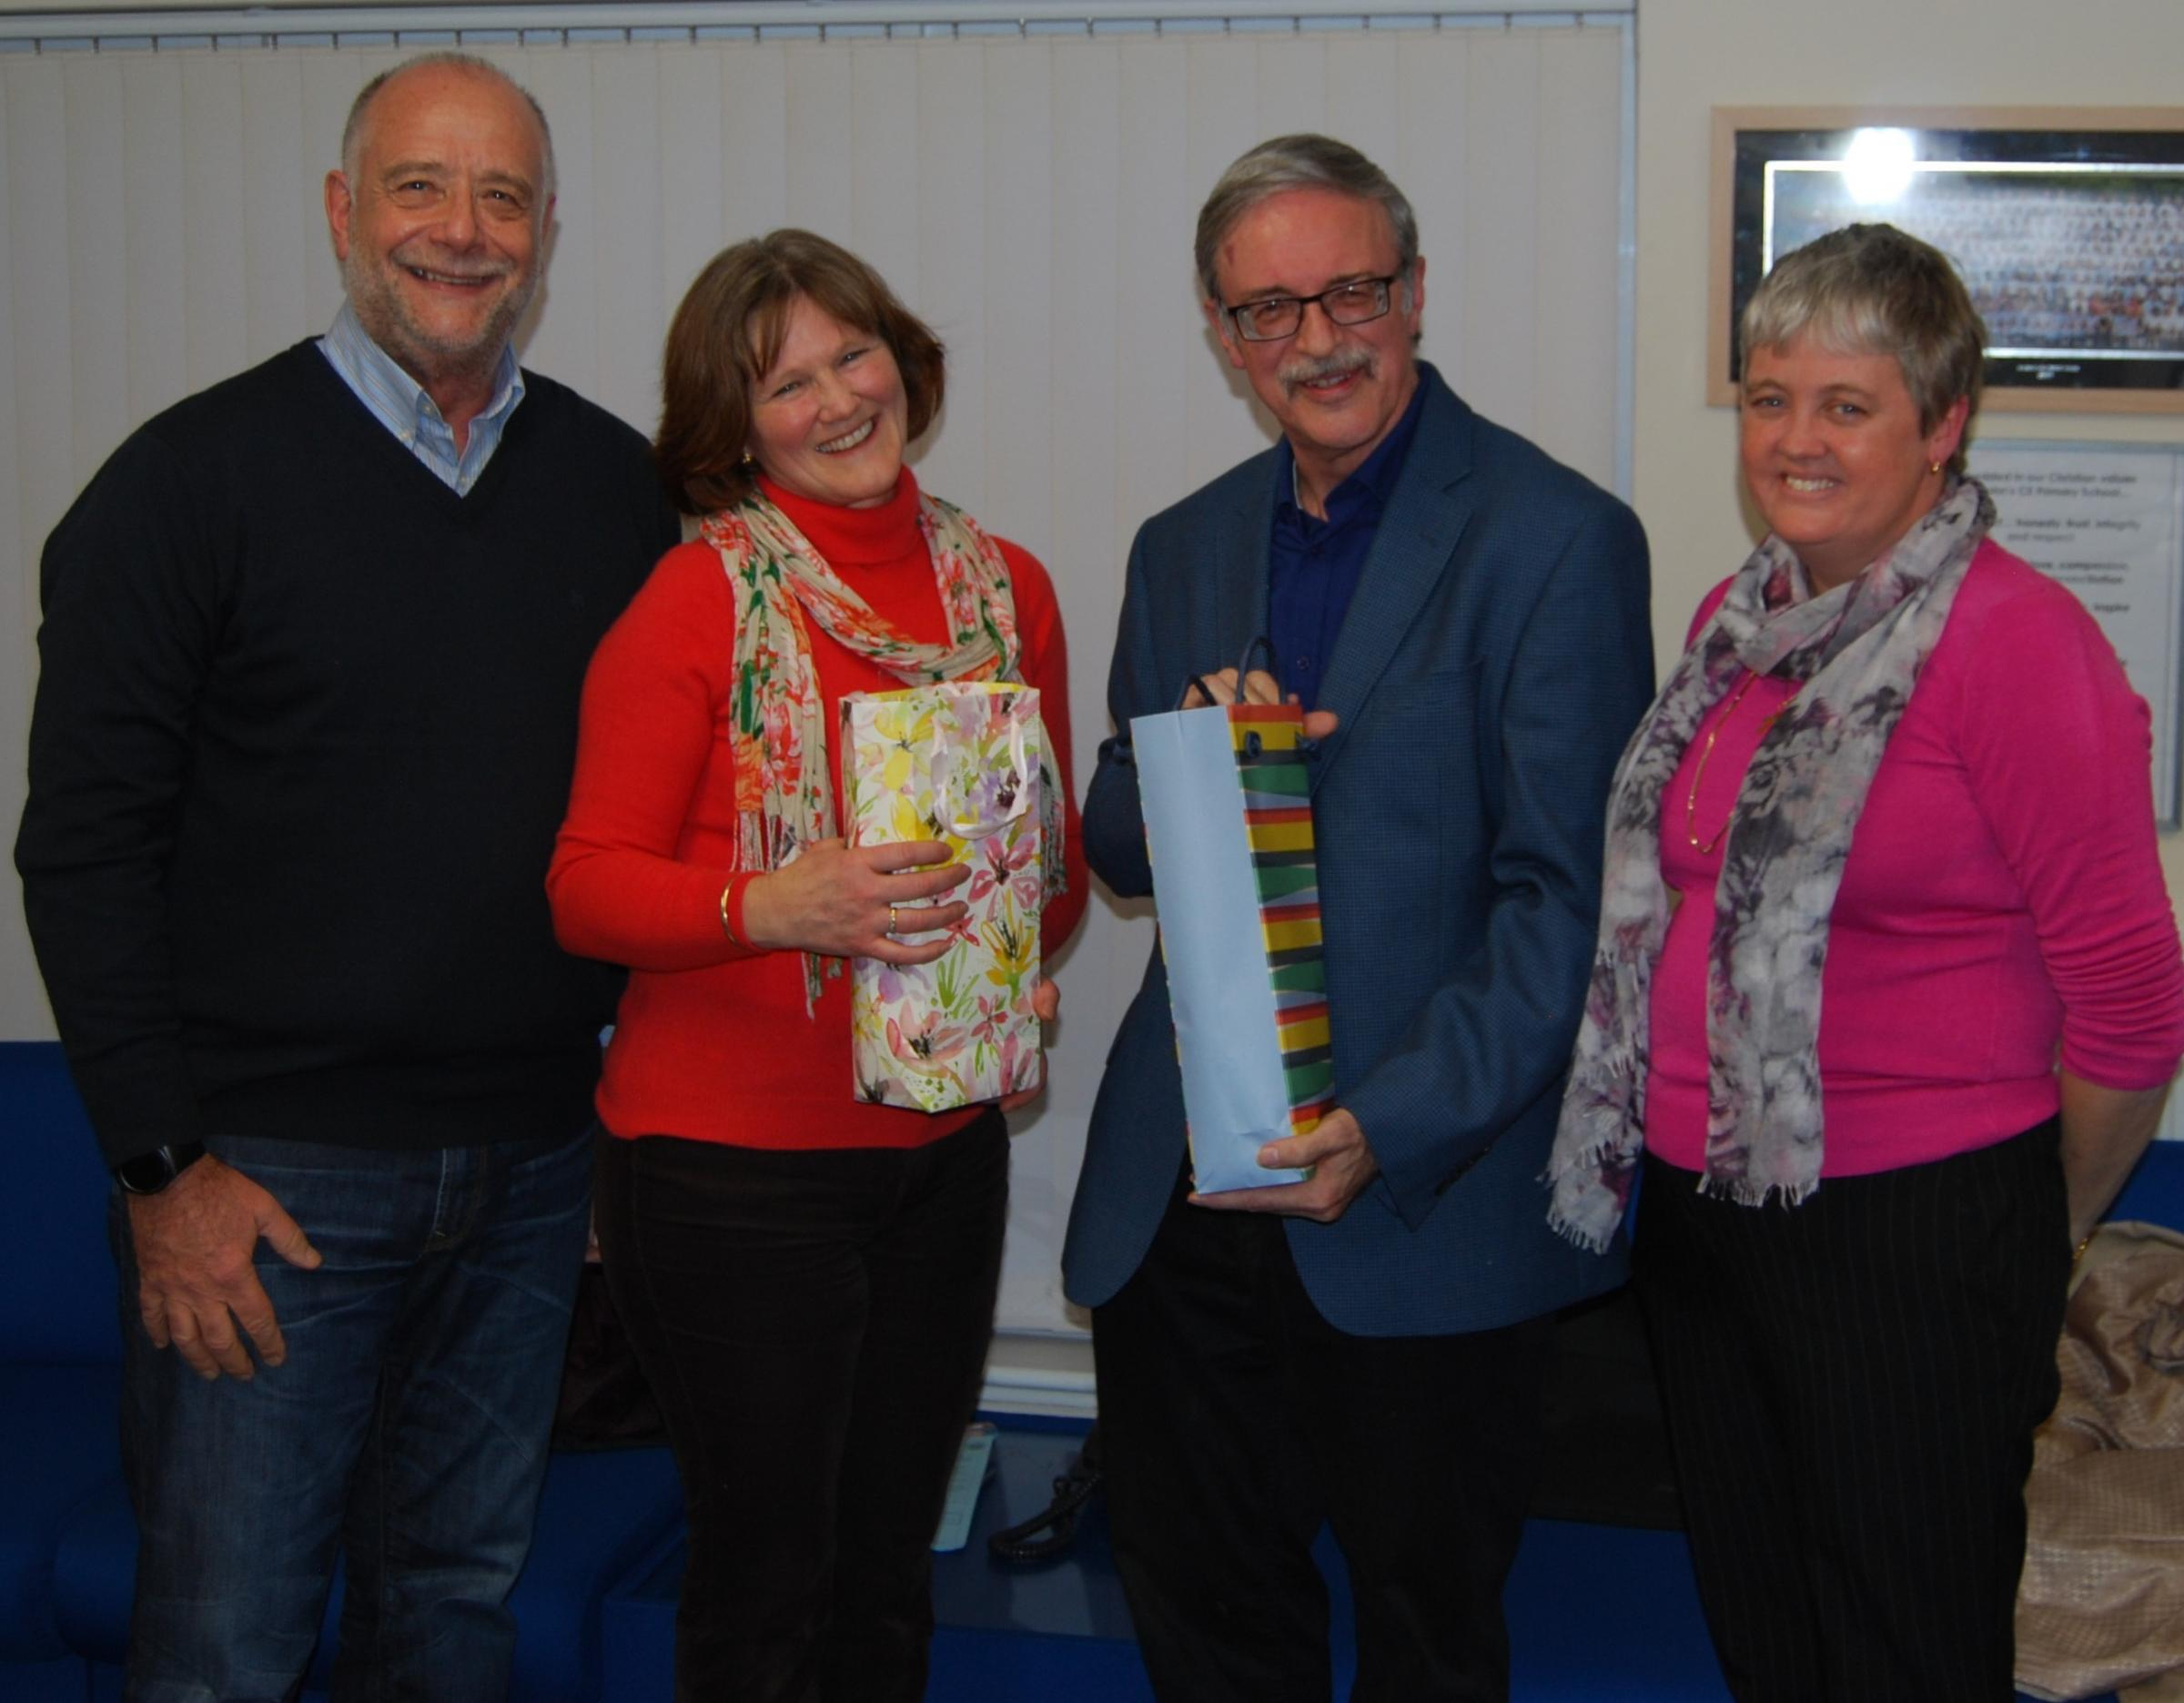 Outgoing governors at St John's Primary School. Donna Lincoln-Ohrstrand (centre left) and Allan Palmer (centre-right). Chair of Governors, Geoff Knappett (L) with headteacher Angela Nicholls (R)